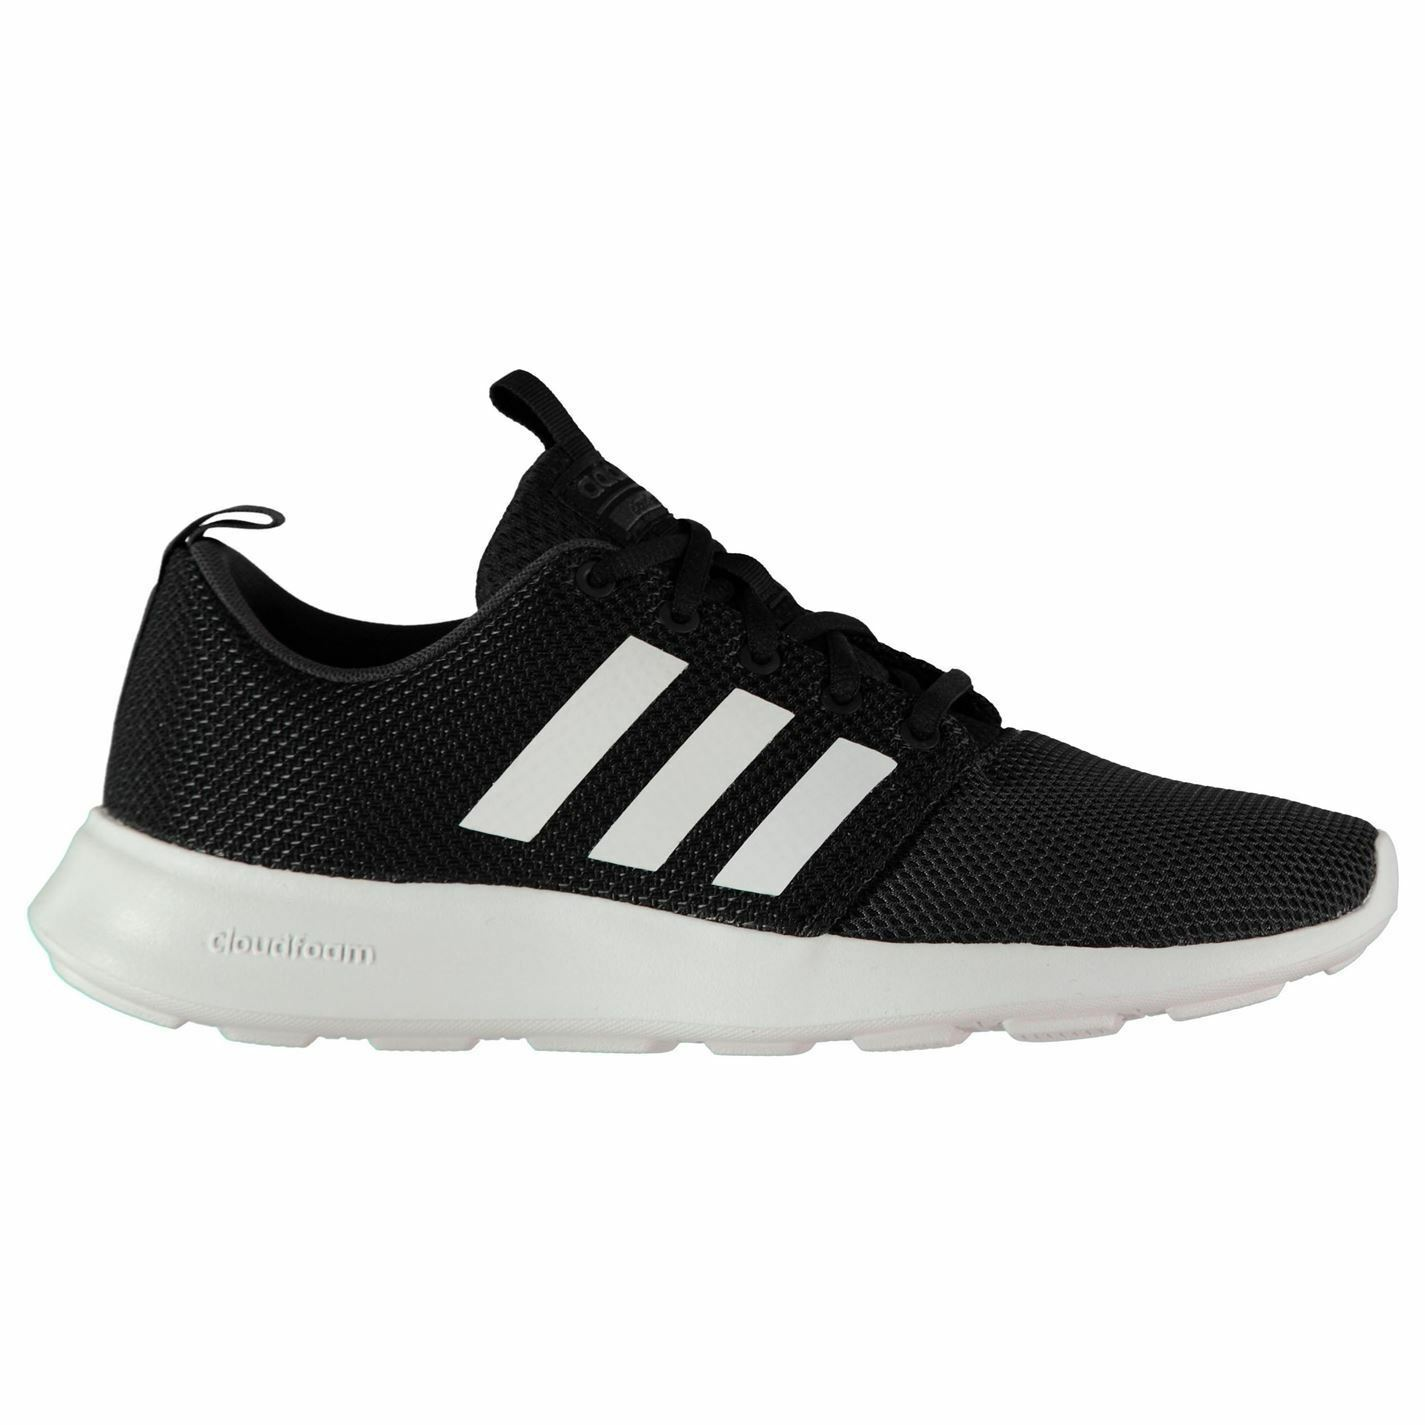 Adidas Cloudfoam Swift Trainers Mens Black White Sports shoes Sneakers